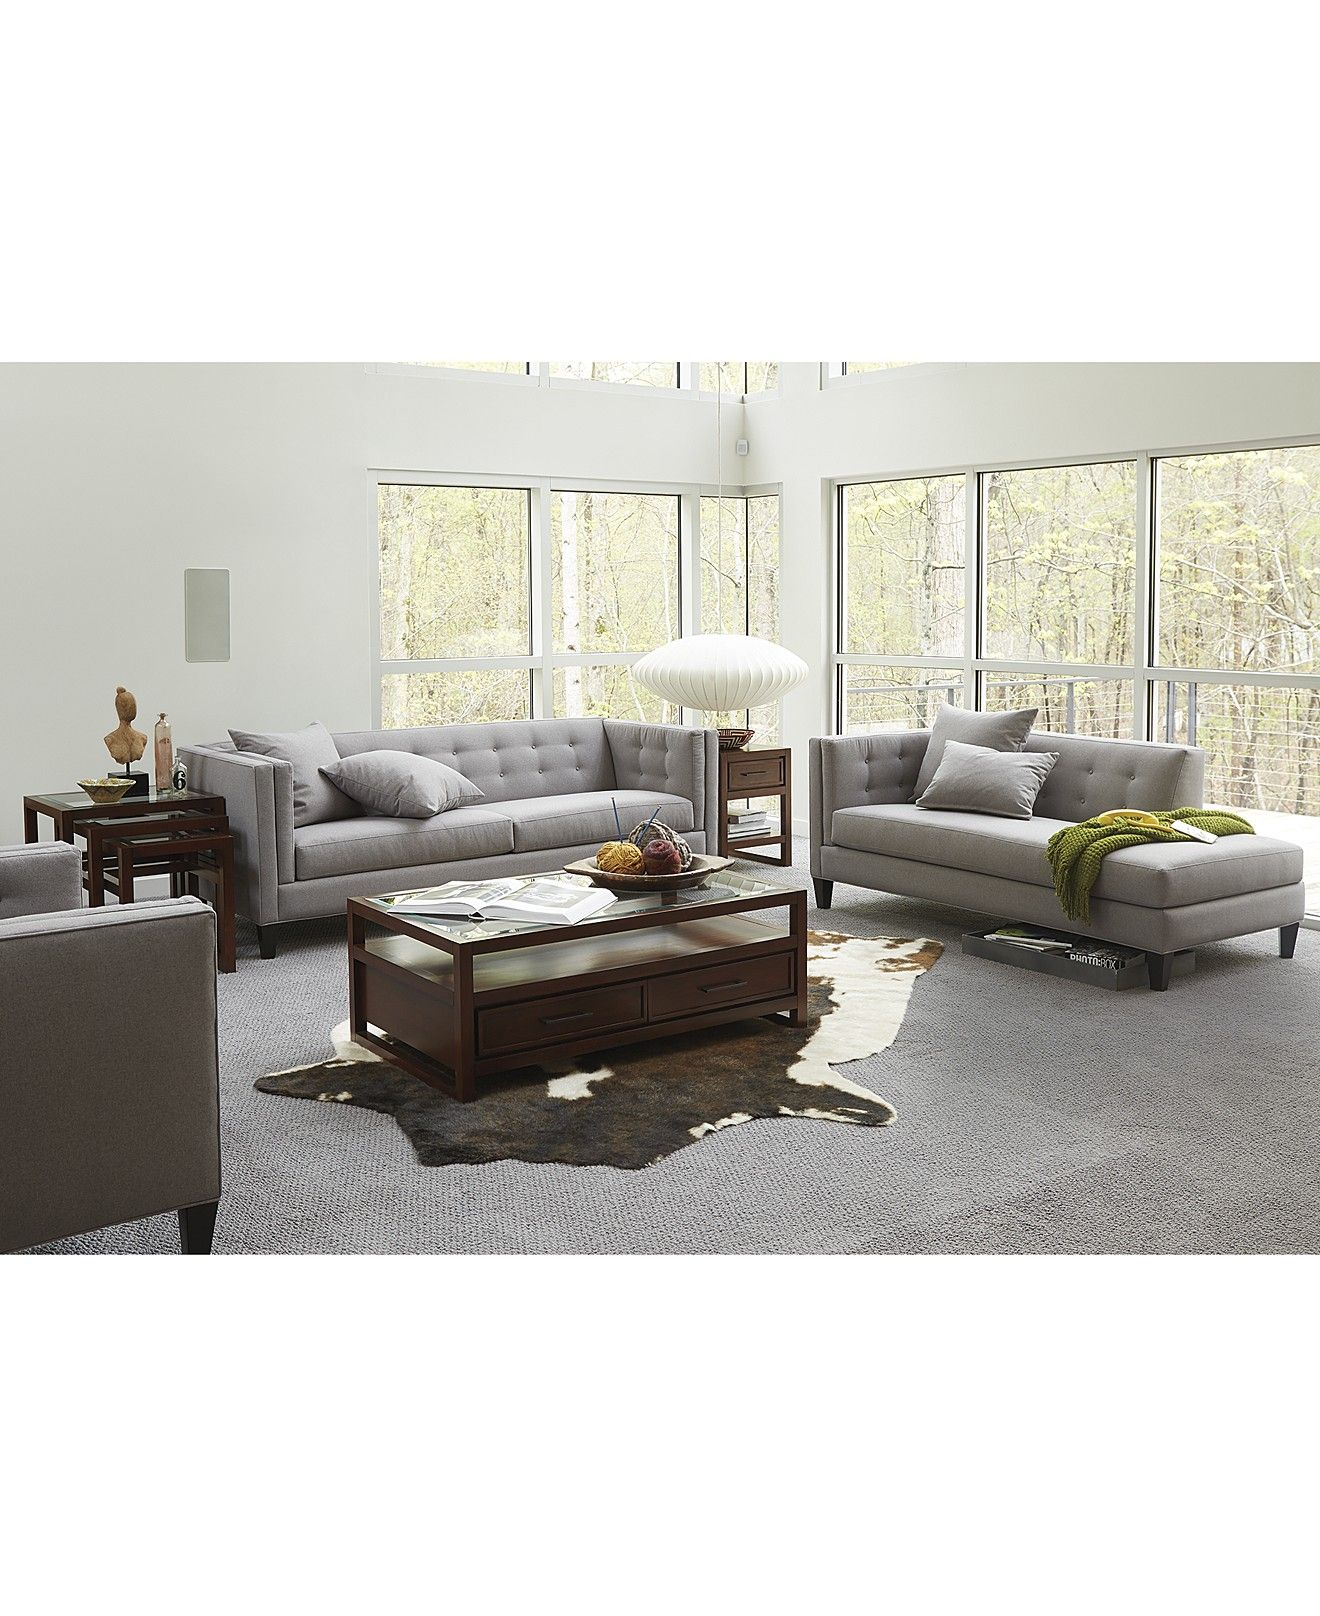 braylei track arm sofa collection furniture macy s 12195 | 9e98fe12afd5f1911d99163e84ccb0f6